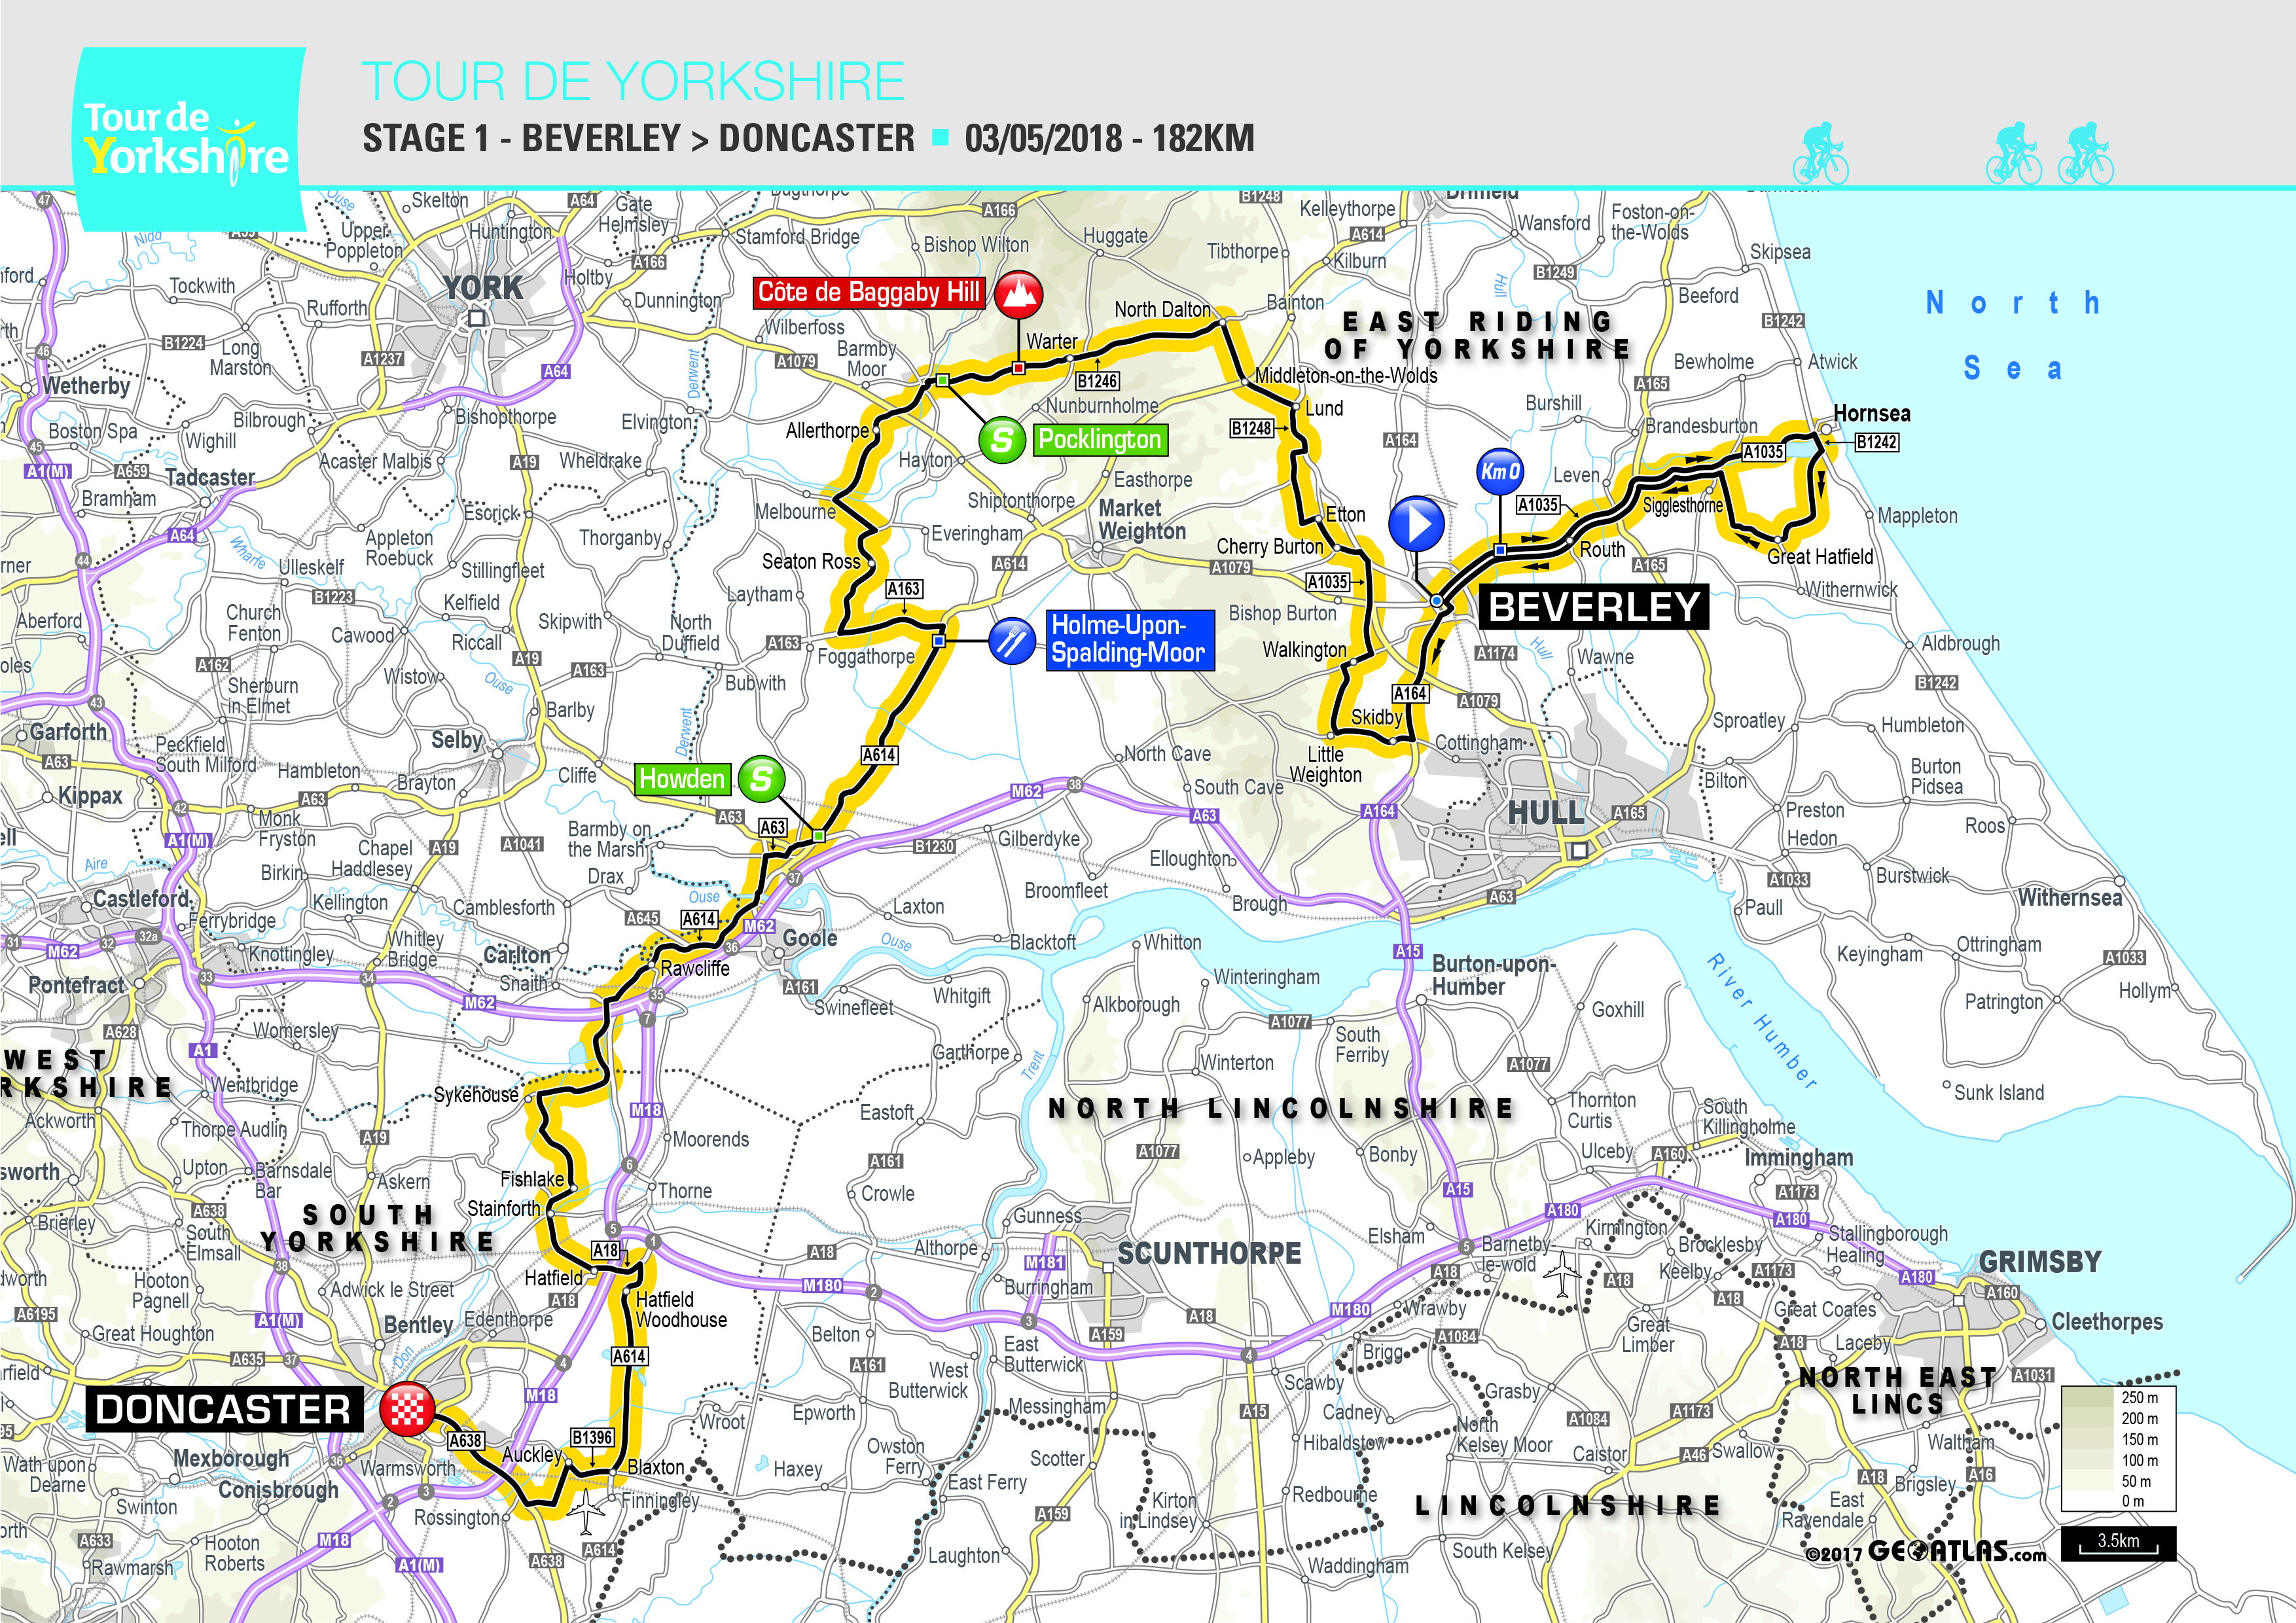 Stage 1, Tour de Yorkshire 2018, Beverley to Doncaster